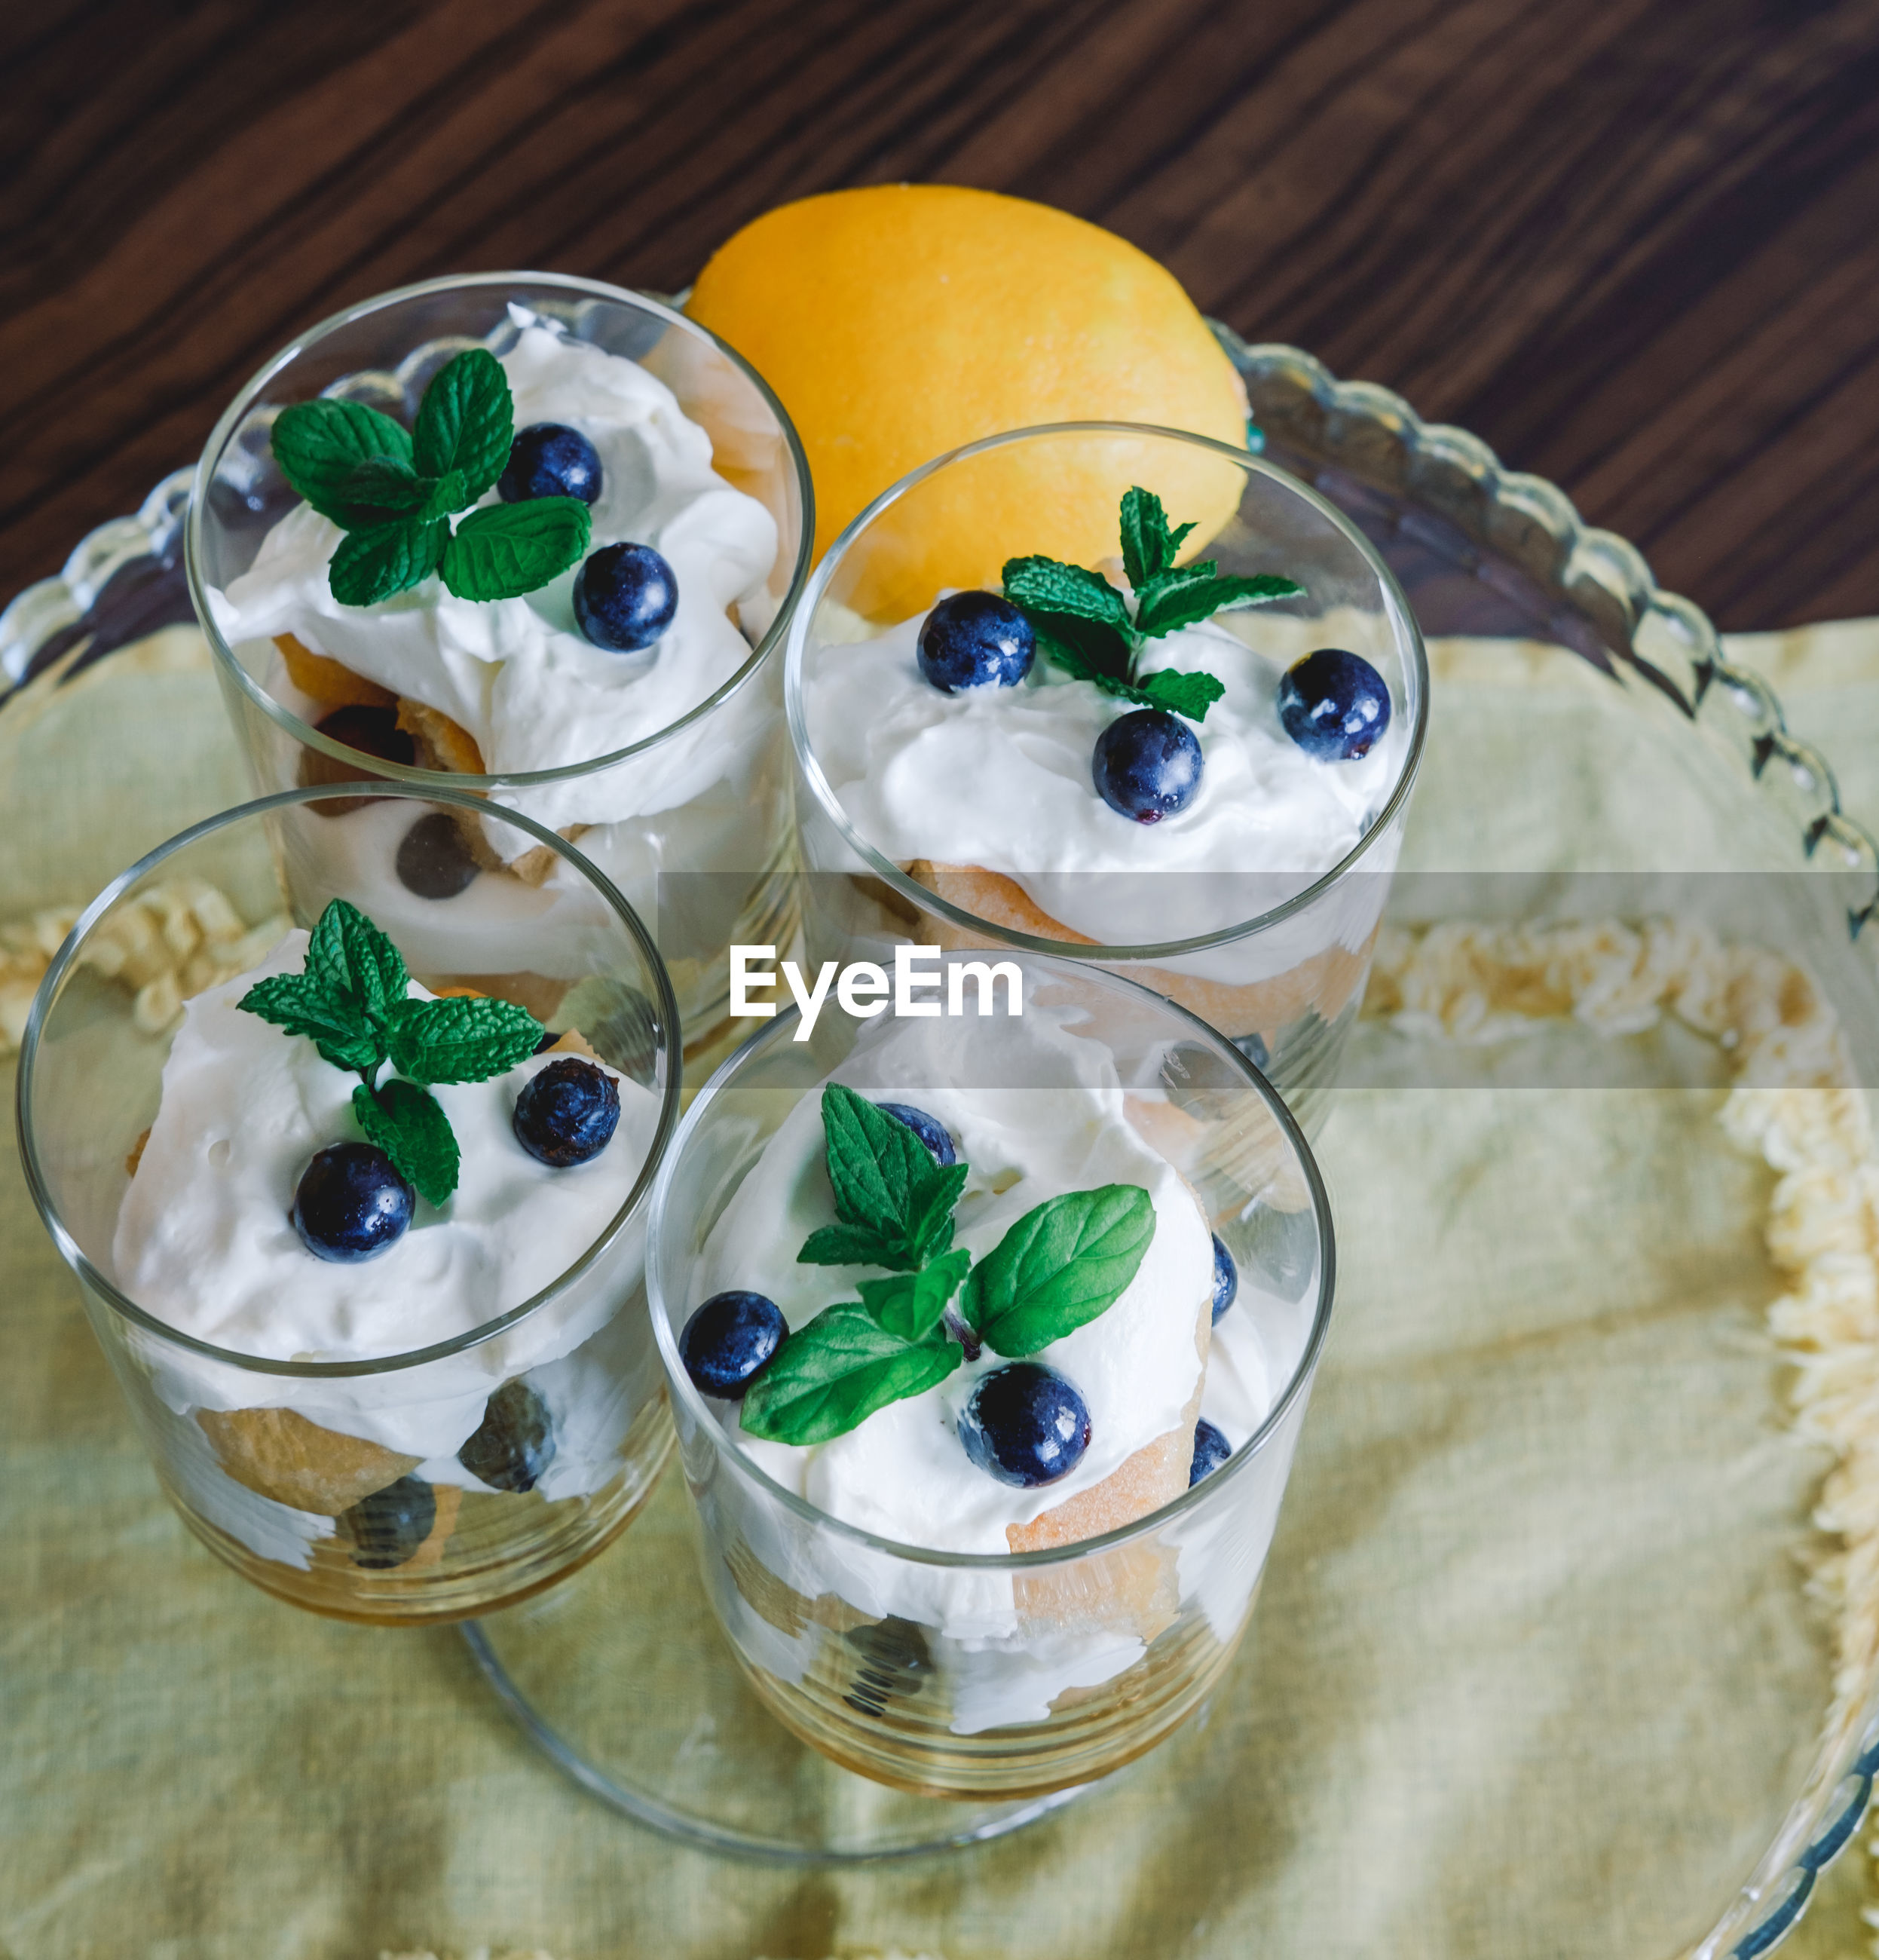 Homemade tiramisu with lemons served on table. top view of delicious dessert in glass cups.